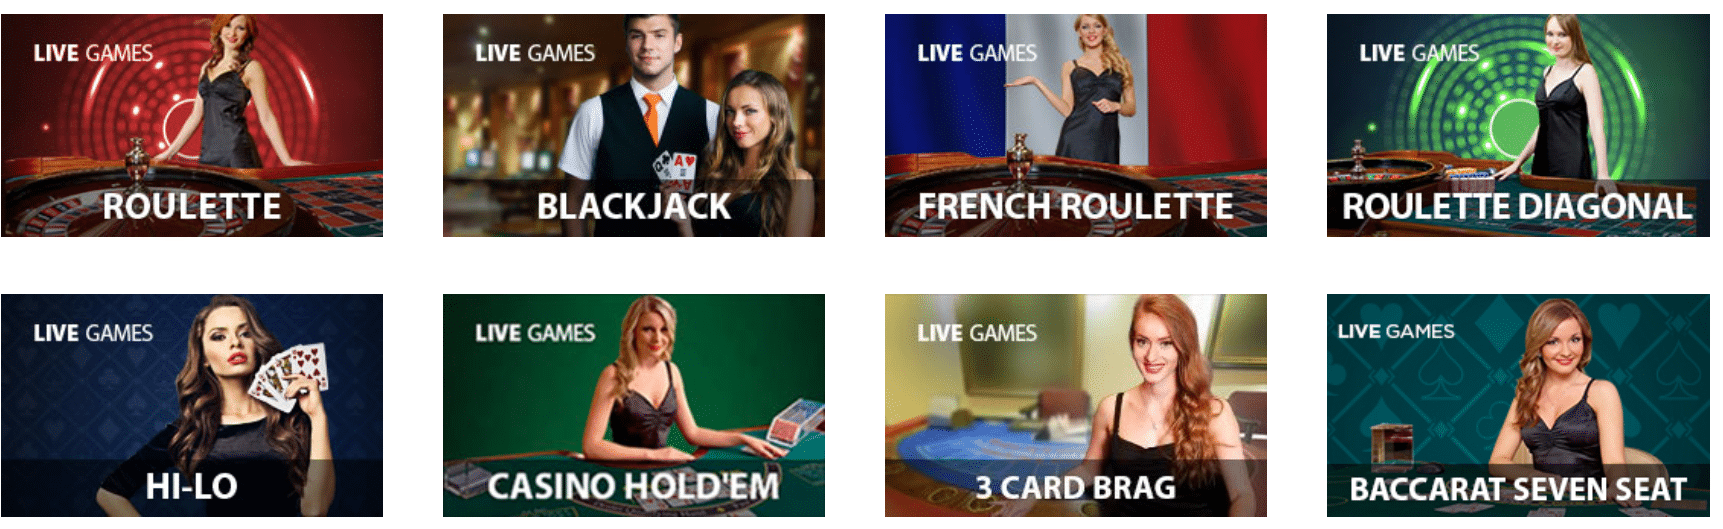 Casino.com Promo Codes for New Players